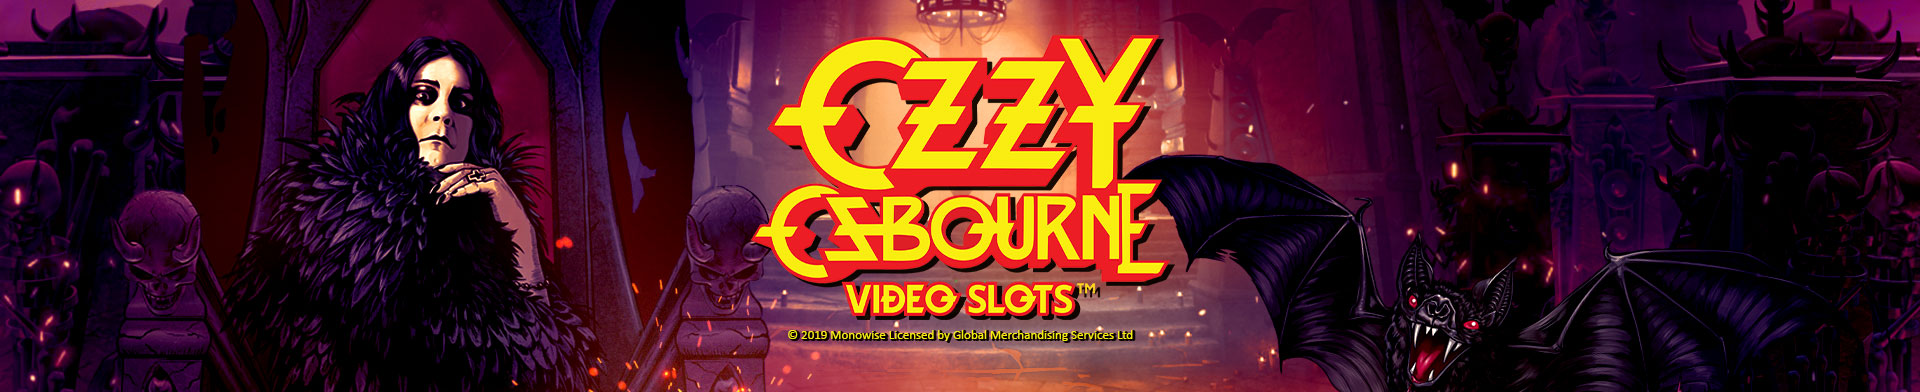 Ozzy banner